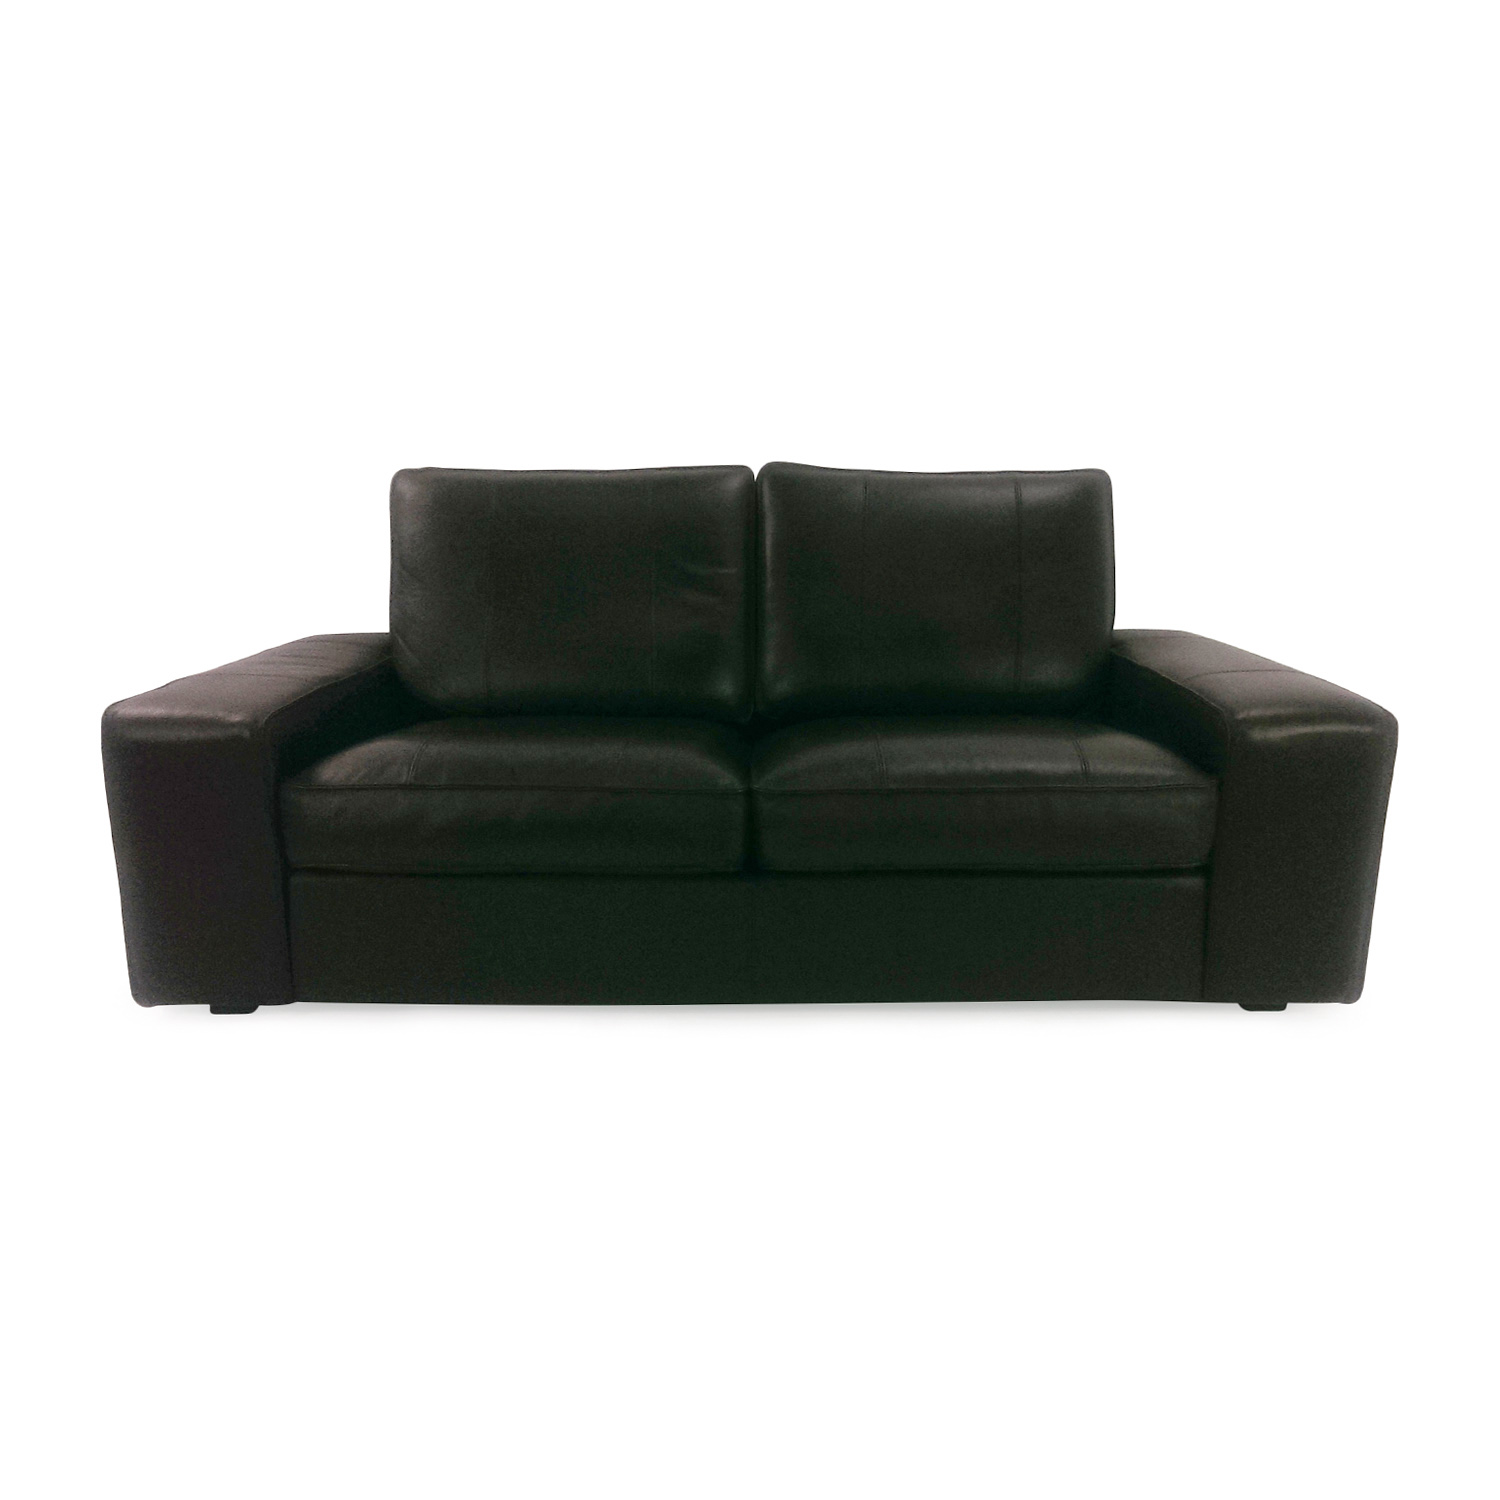 buy Dark Chocolate Couch Ikea